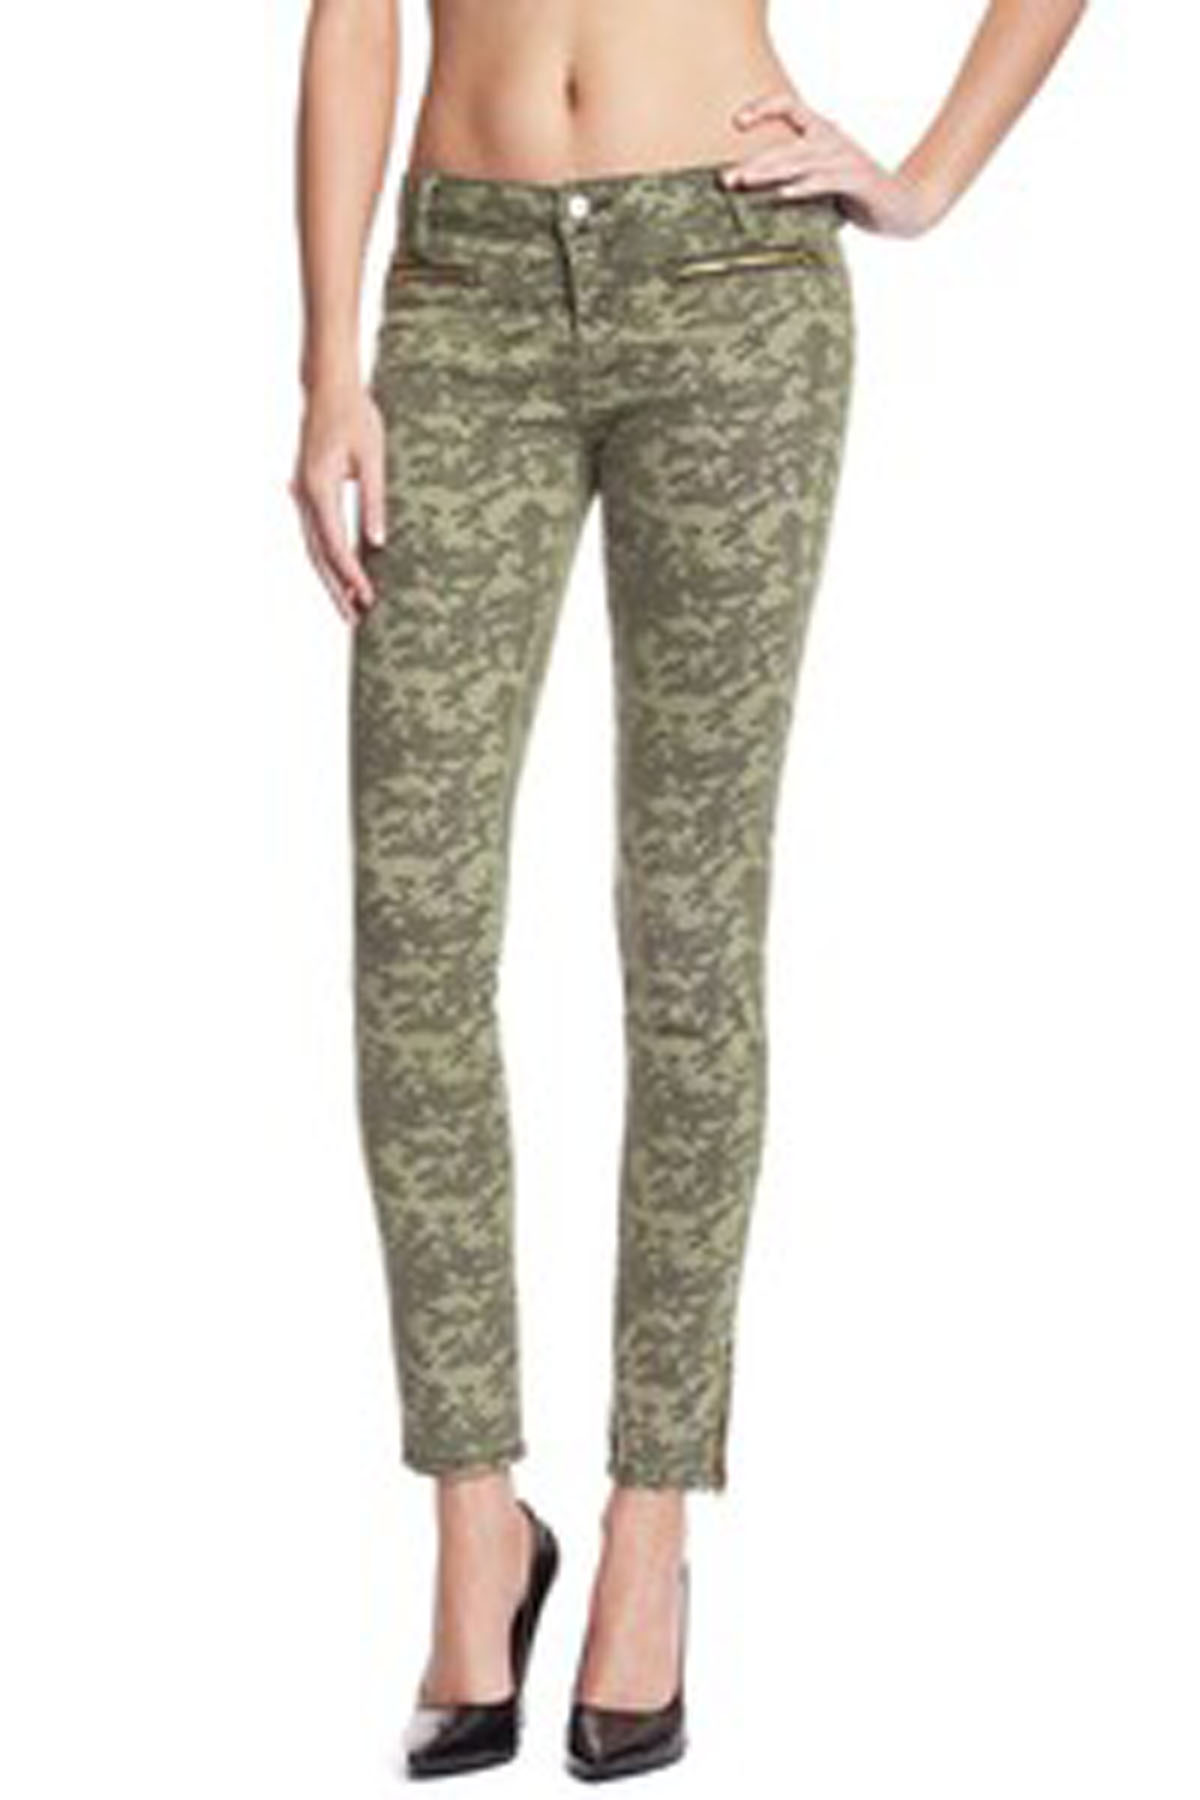 10 Things To Wear With Camo Skinny Jeans